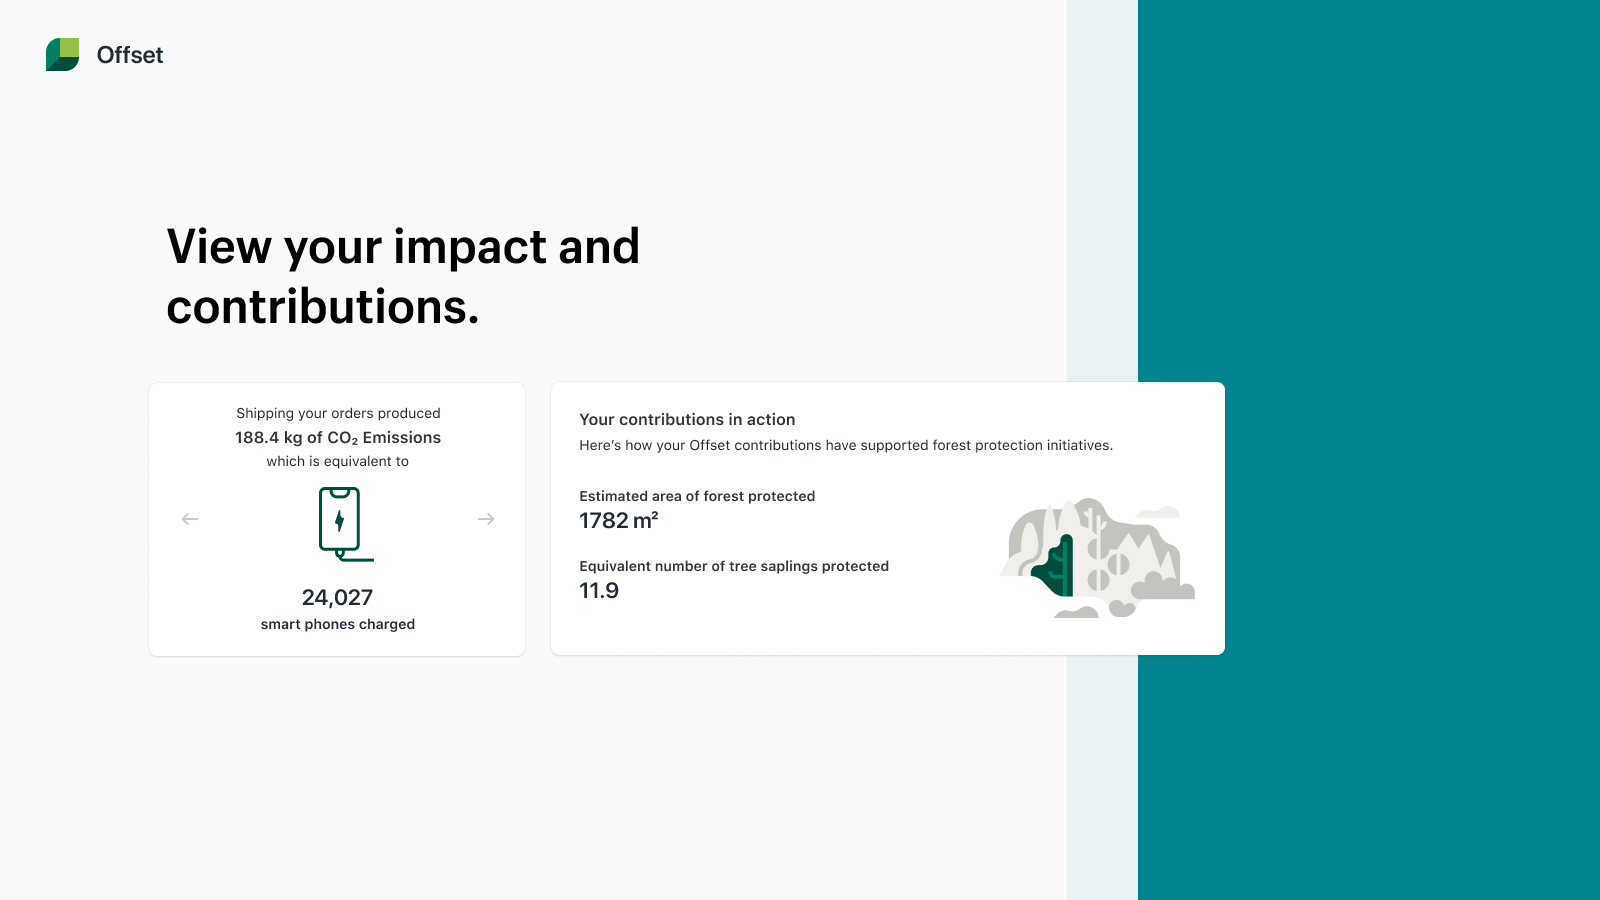 Your dashboard shows the environmental impact your offsets have.